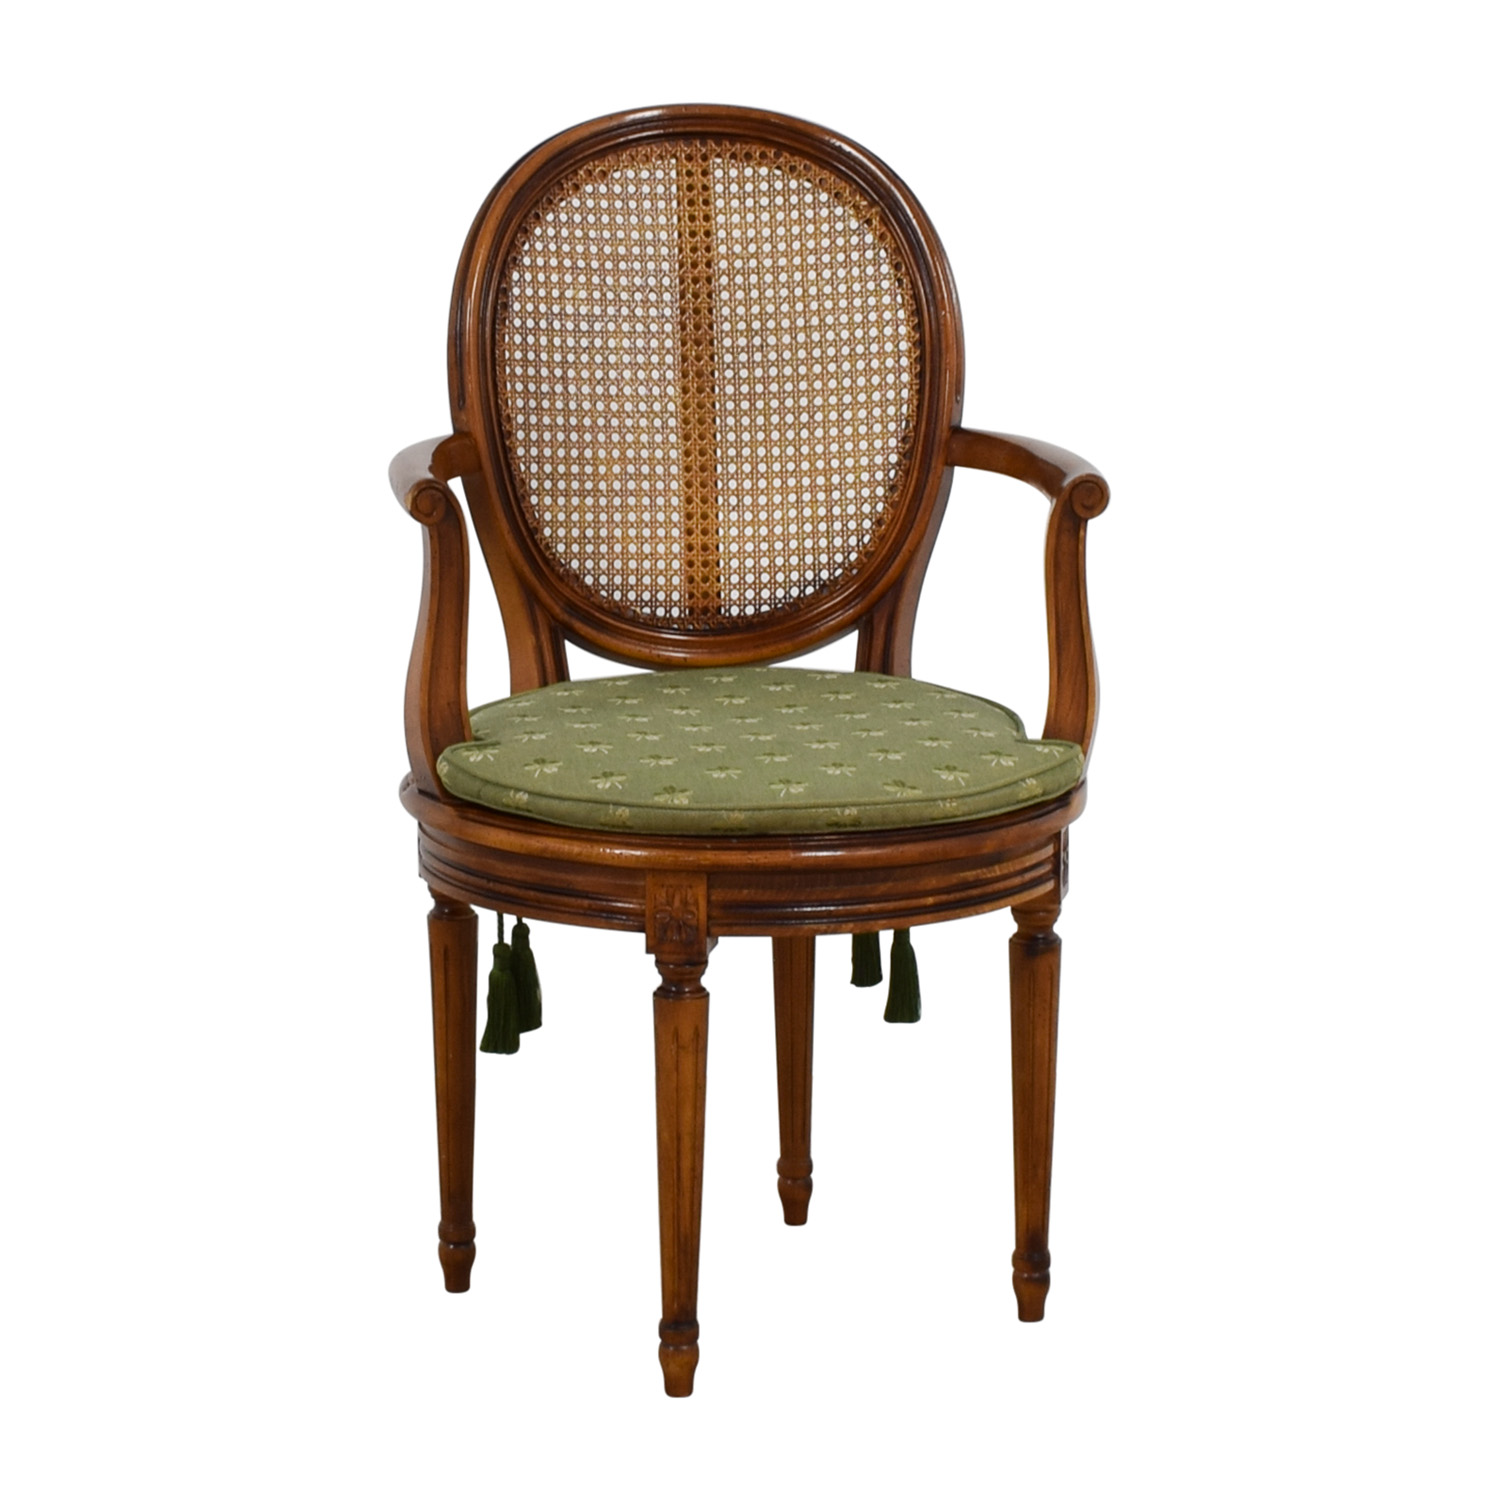 Reproduction Green Four Leaf Clover Swivel Arm Chair for sale